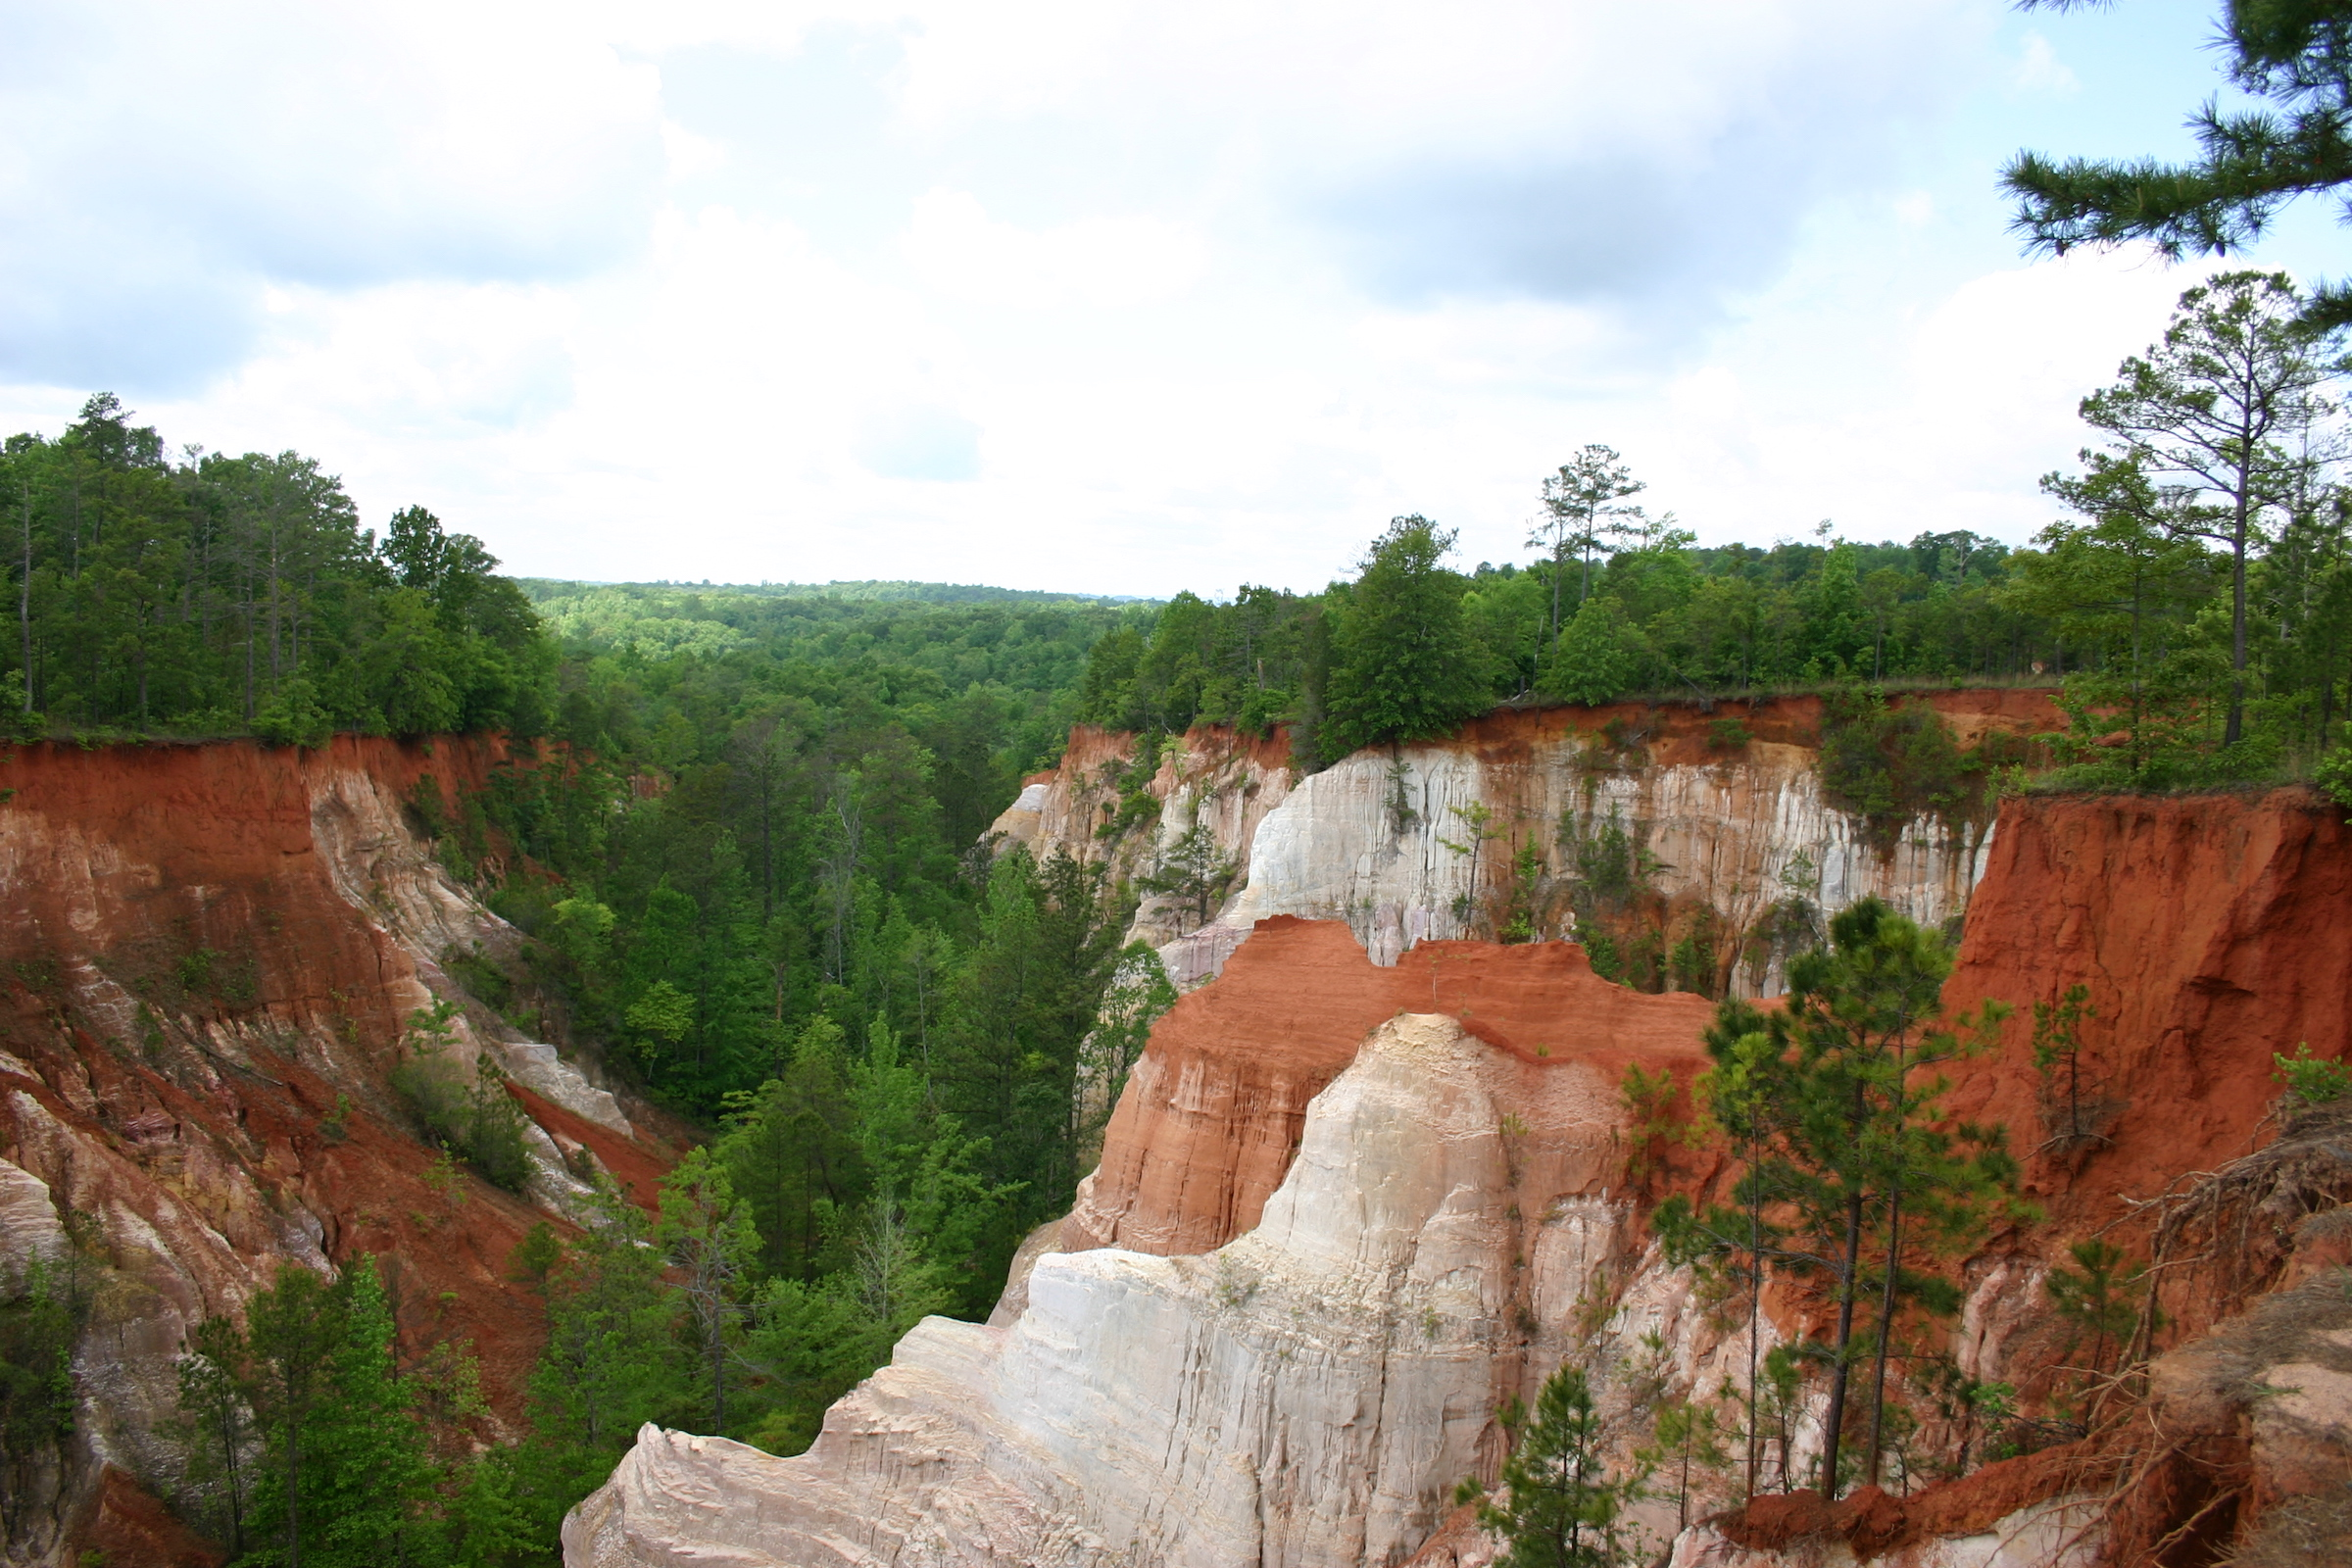 Georgia road trips lead to deep chasms and colorful cliffs at Providence Canyon.